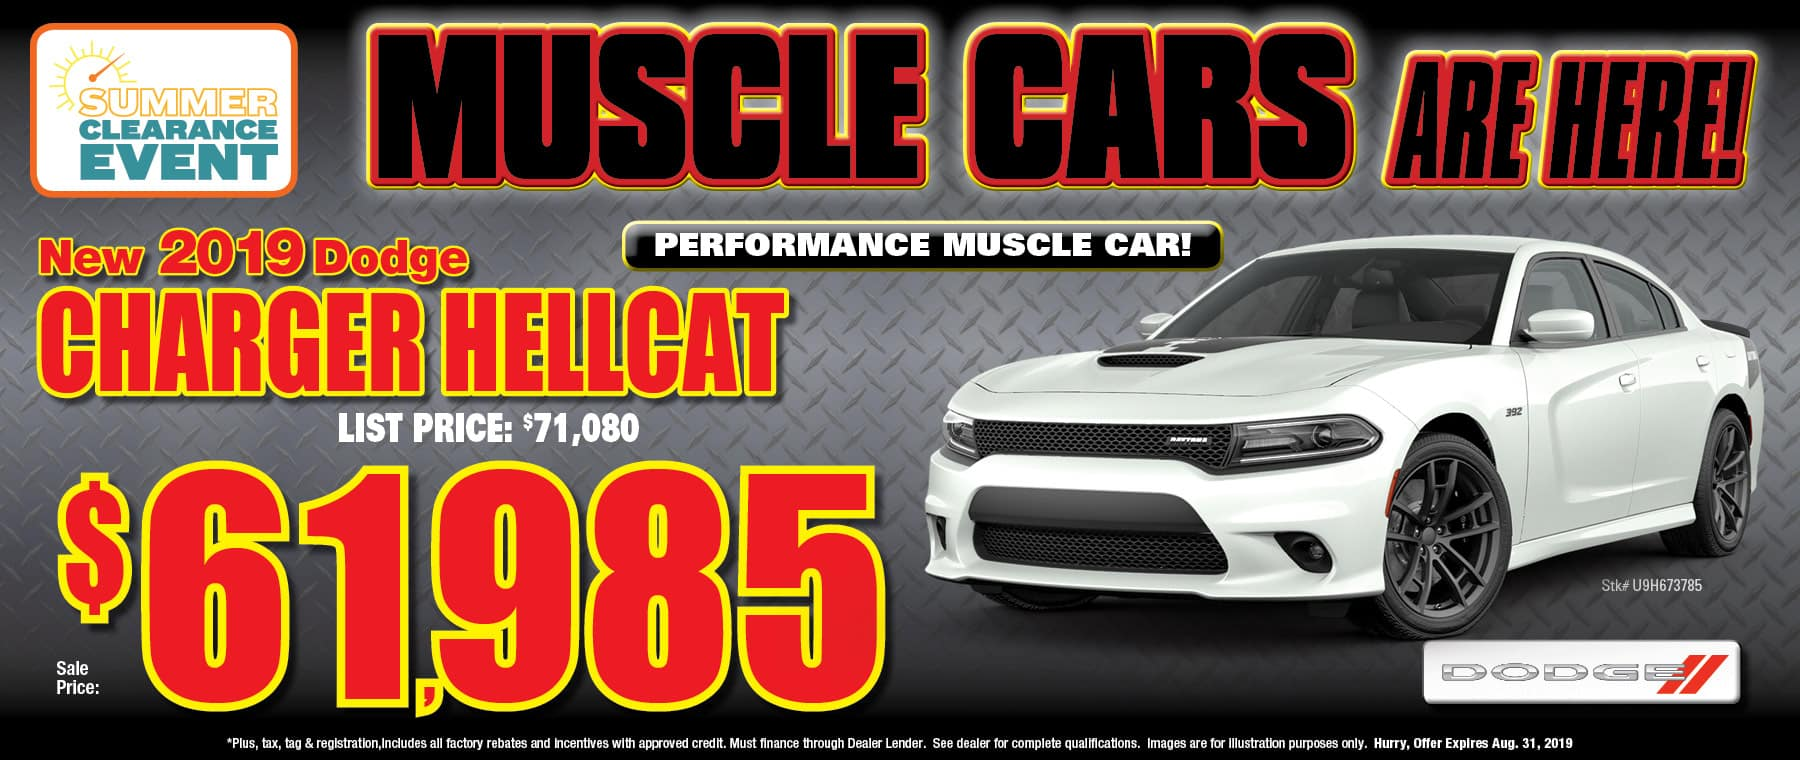 New 2019 Dodge Charger Hellcat!